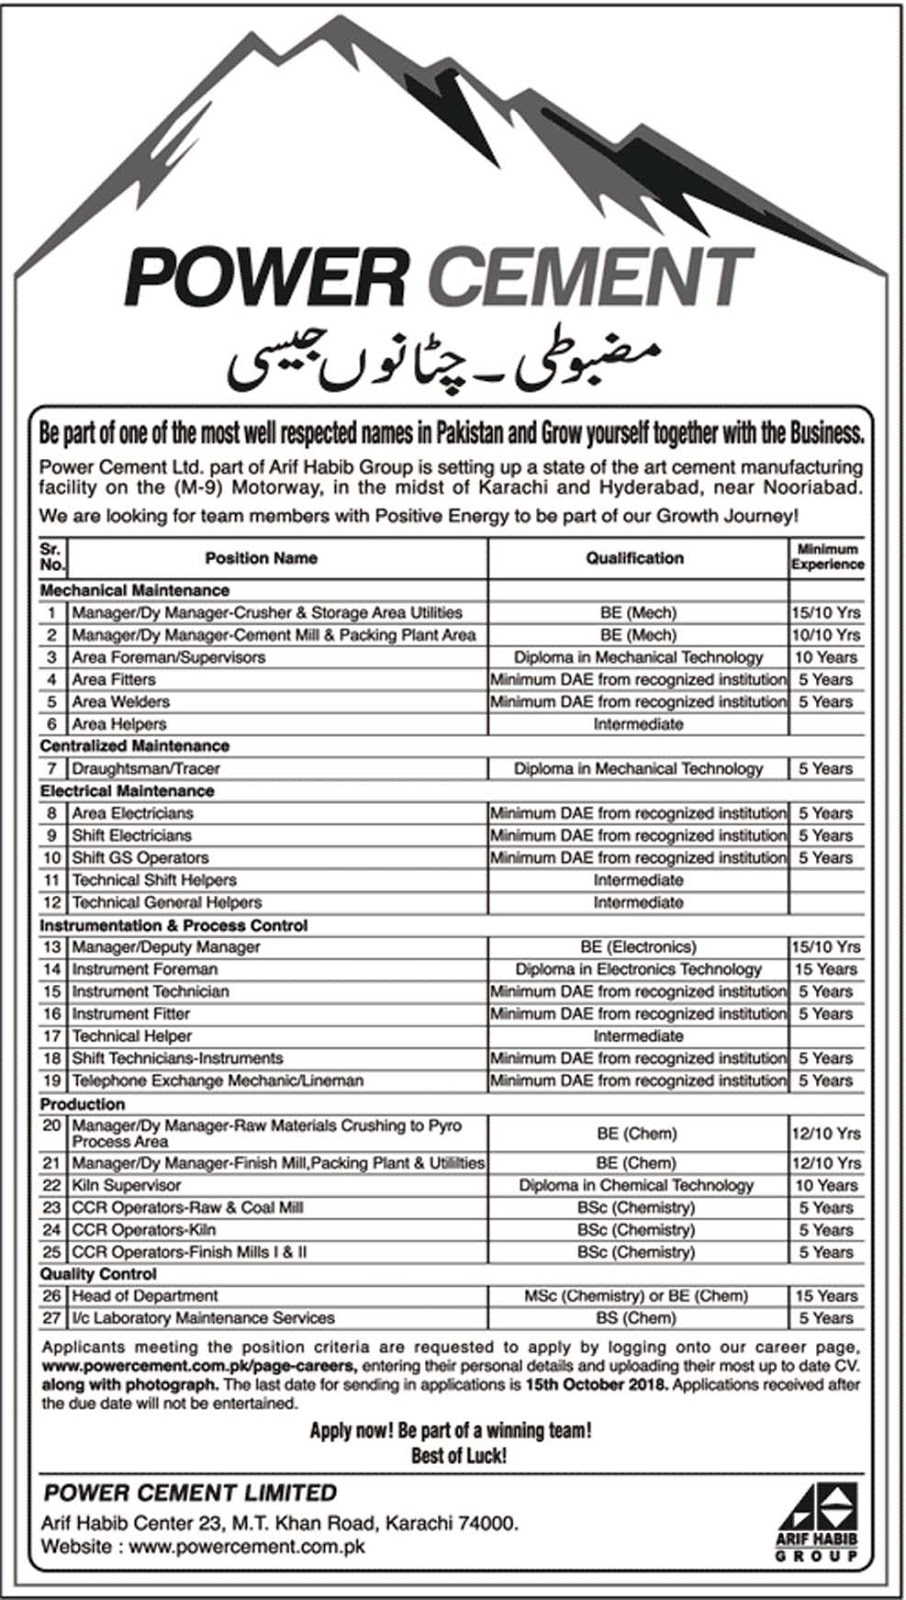 Latest Vacancies Announced in Power Cement Limited Karachi 10 October 2018 - Naya Pakistan